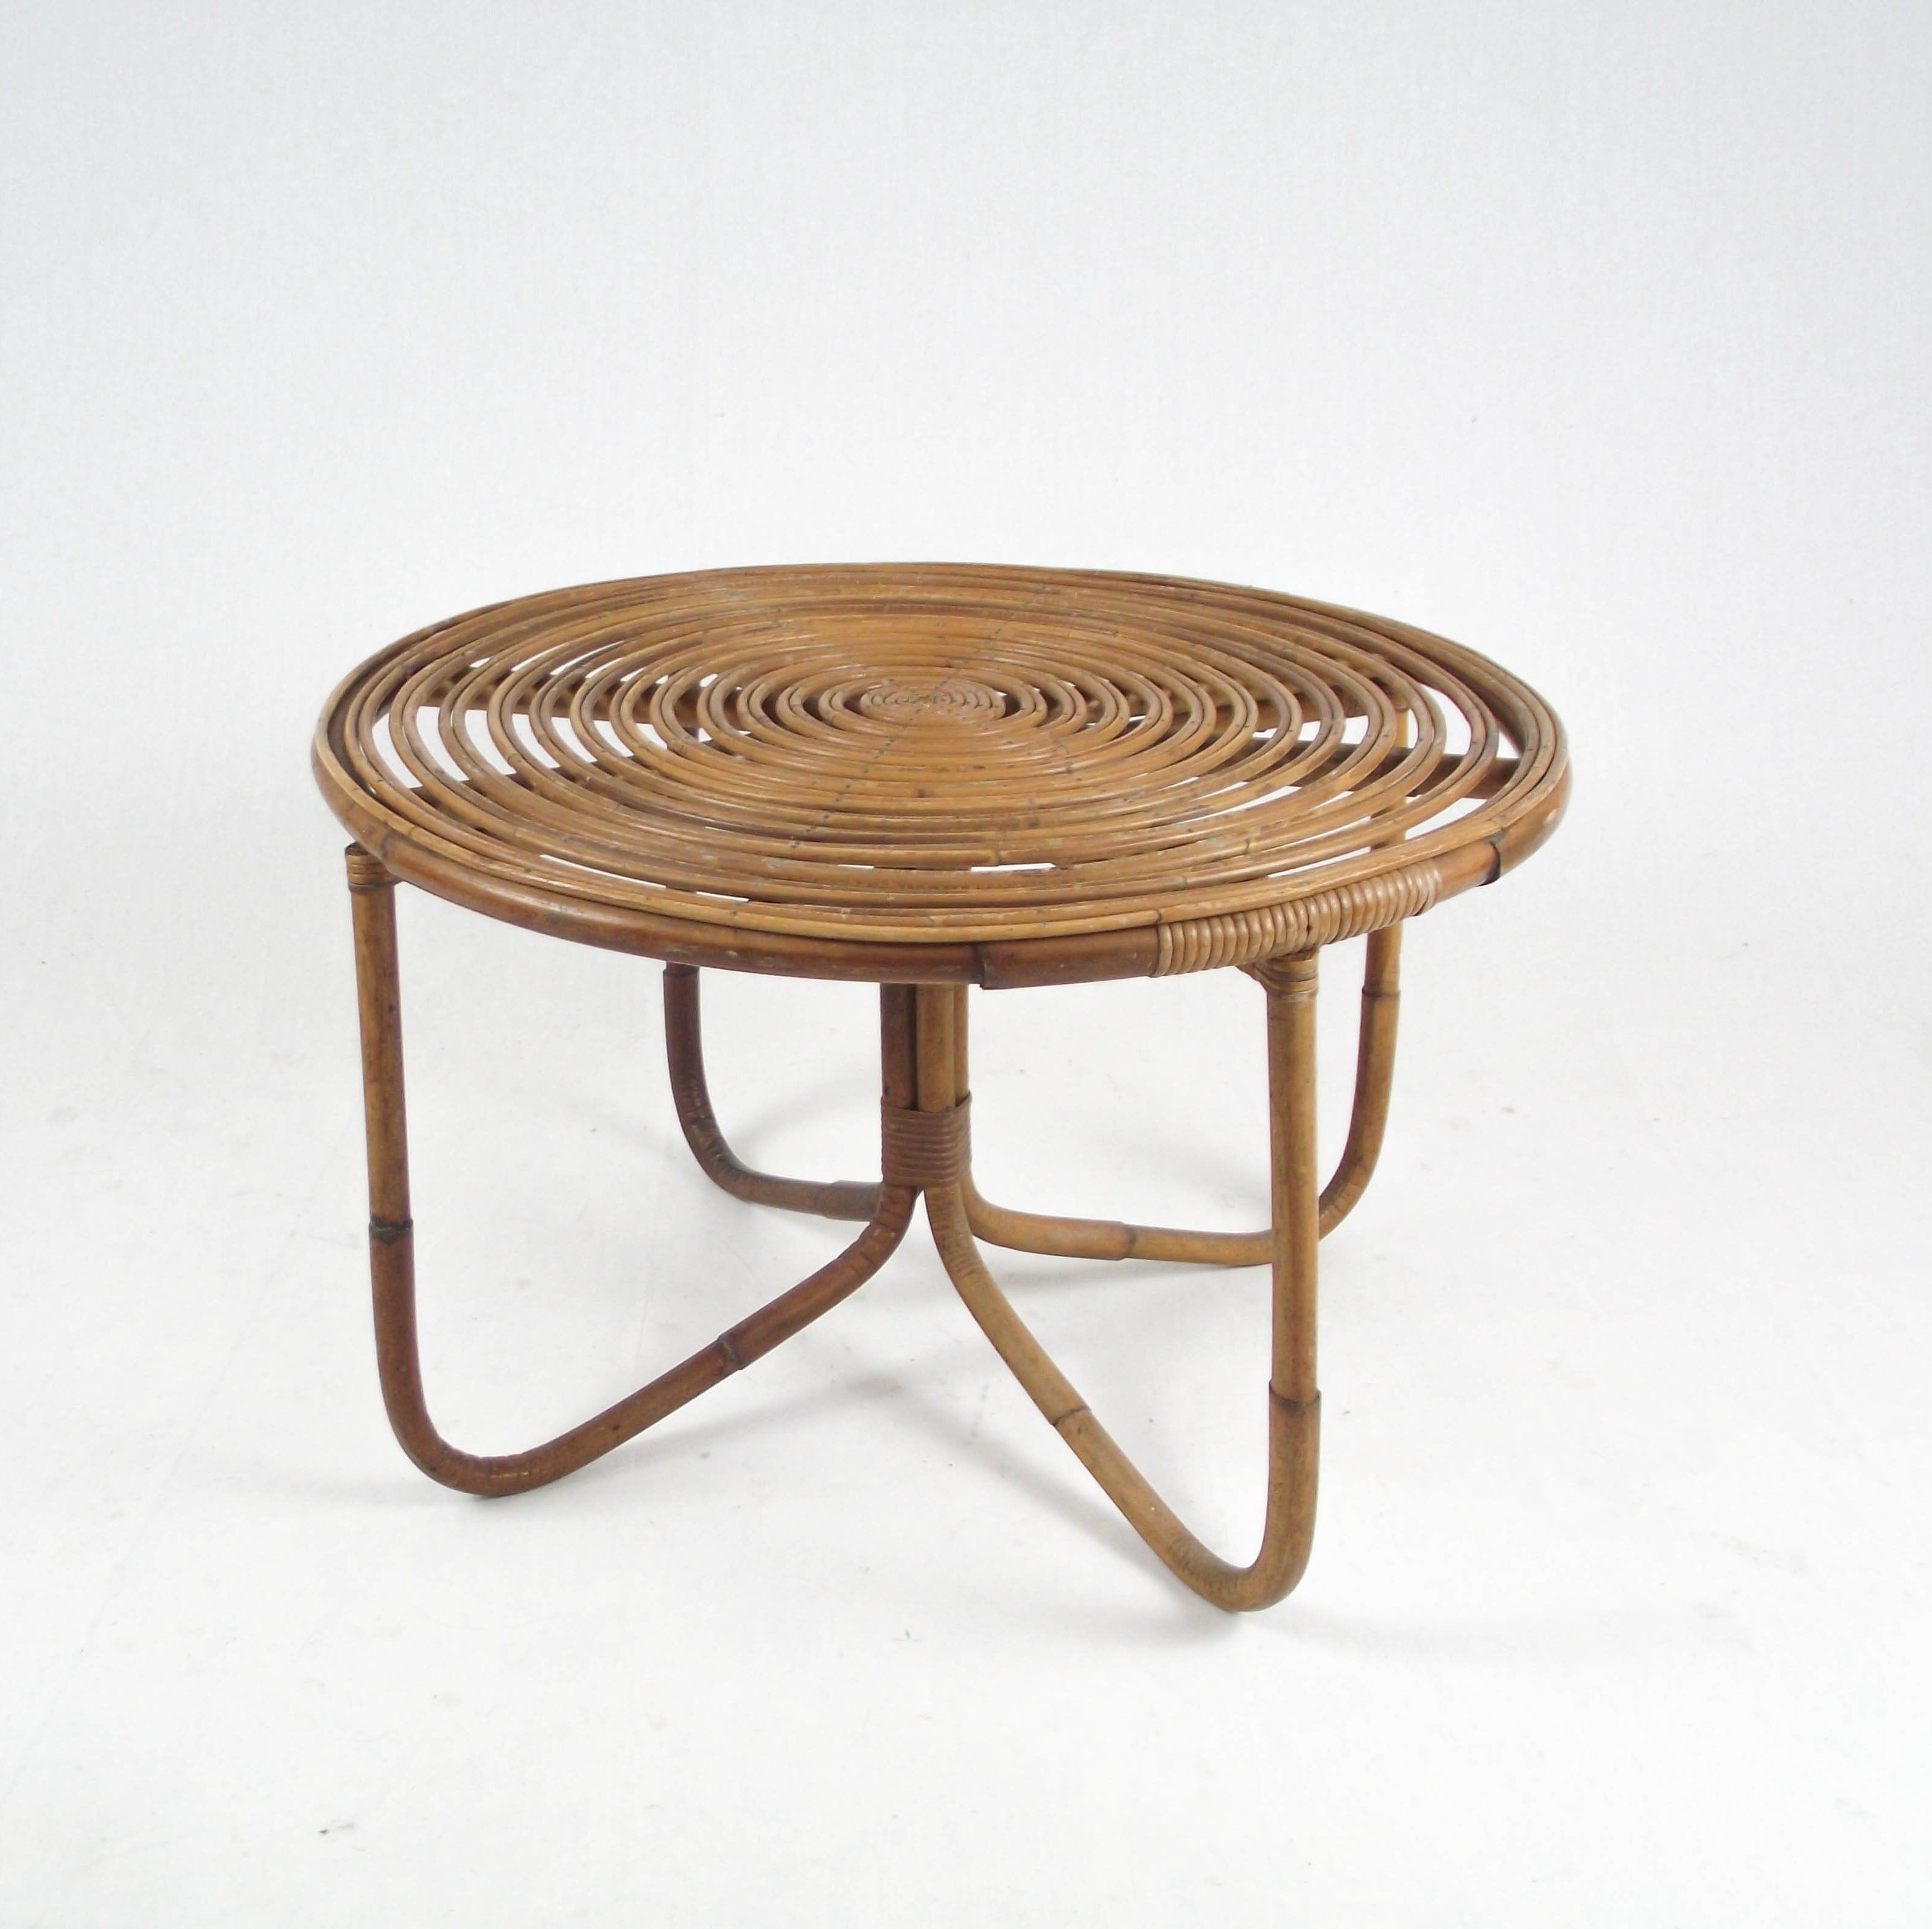 - Round Coffee Table In Rattan, Italy 1950s #98072